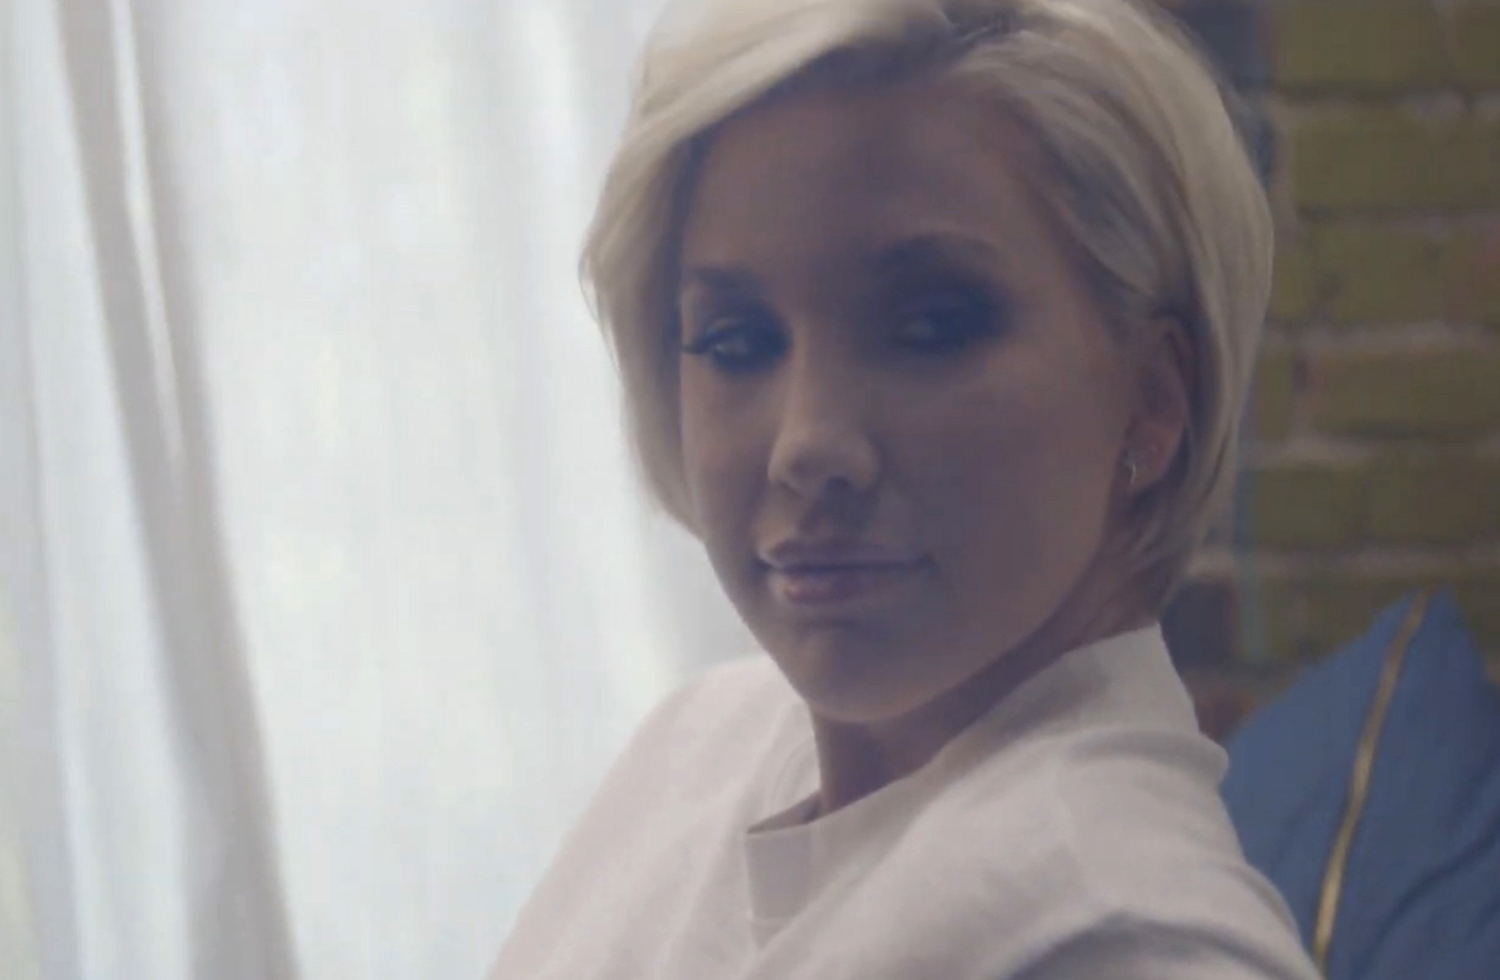 Savannah Chrisley appearing in the music video Levi Denim